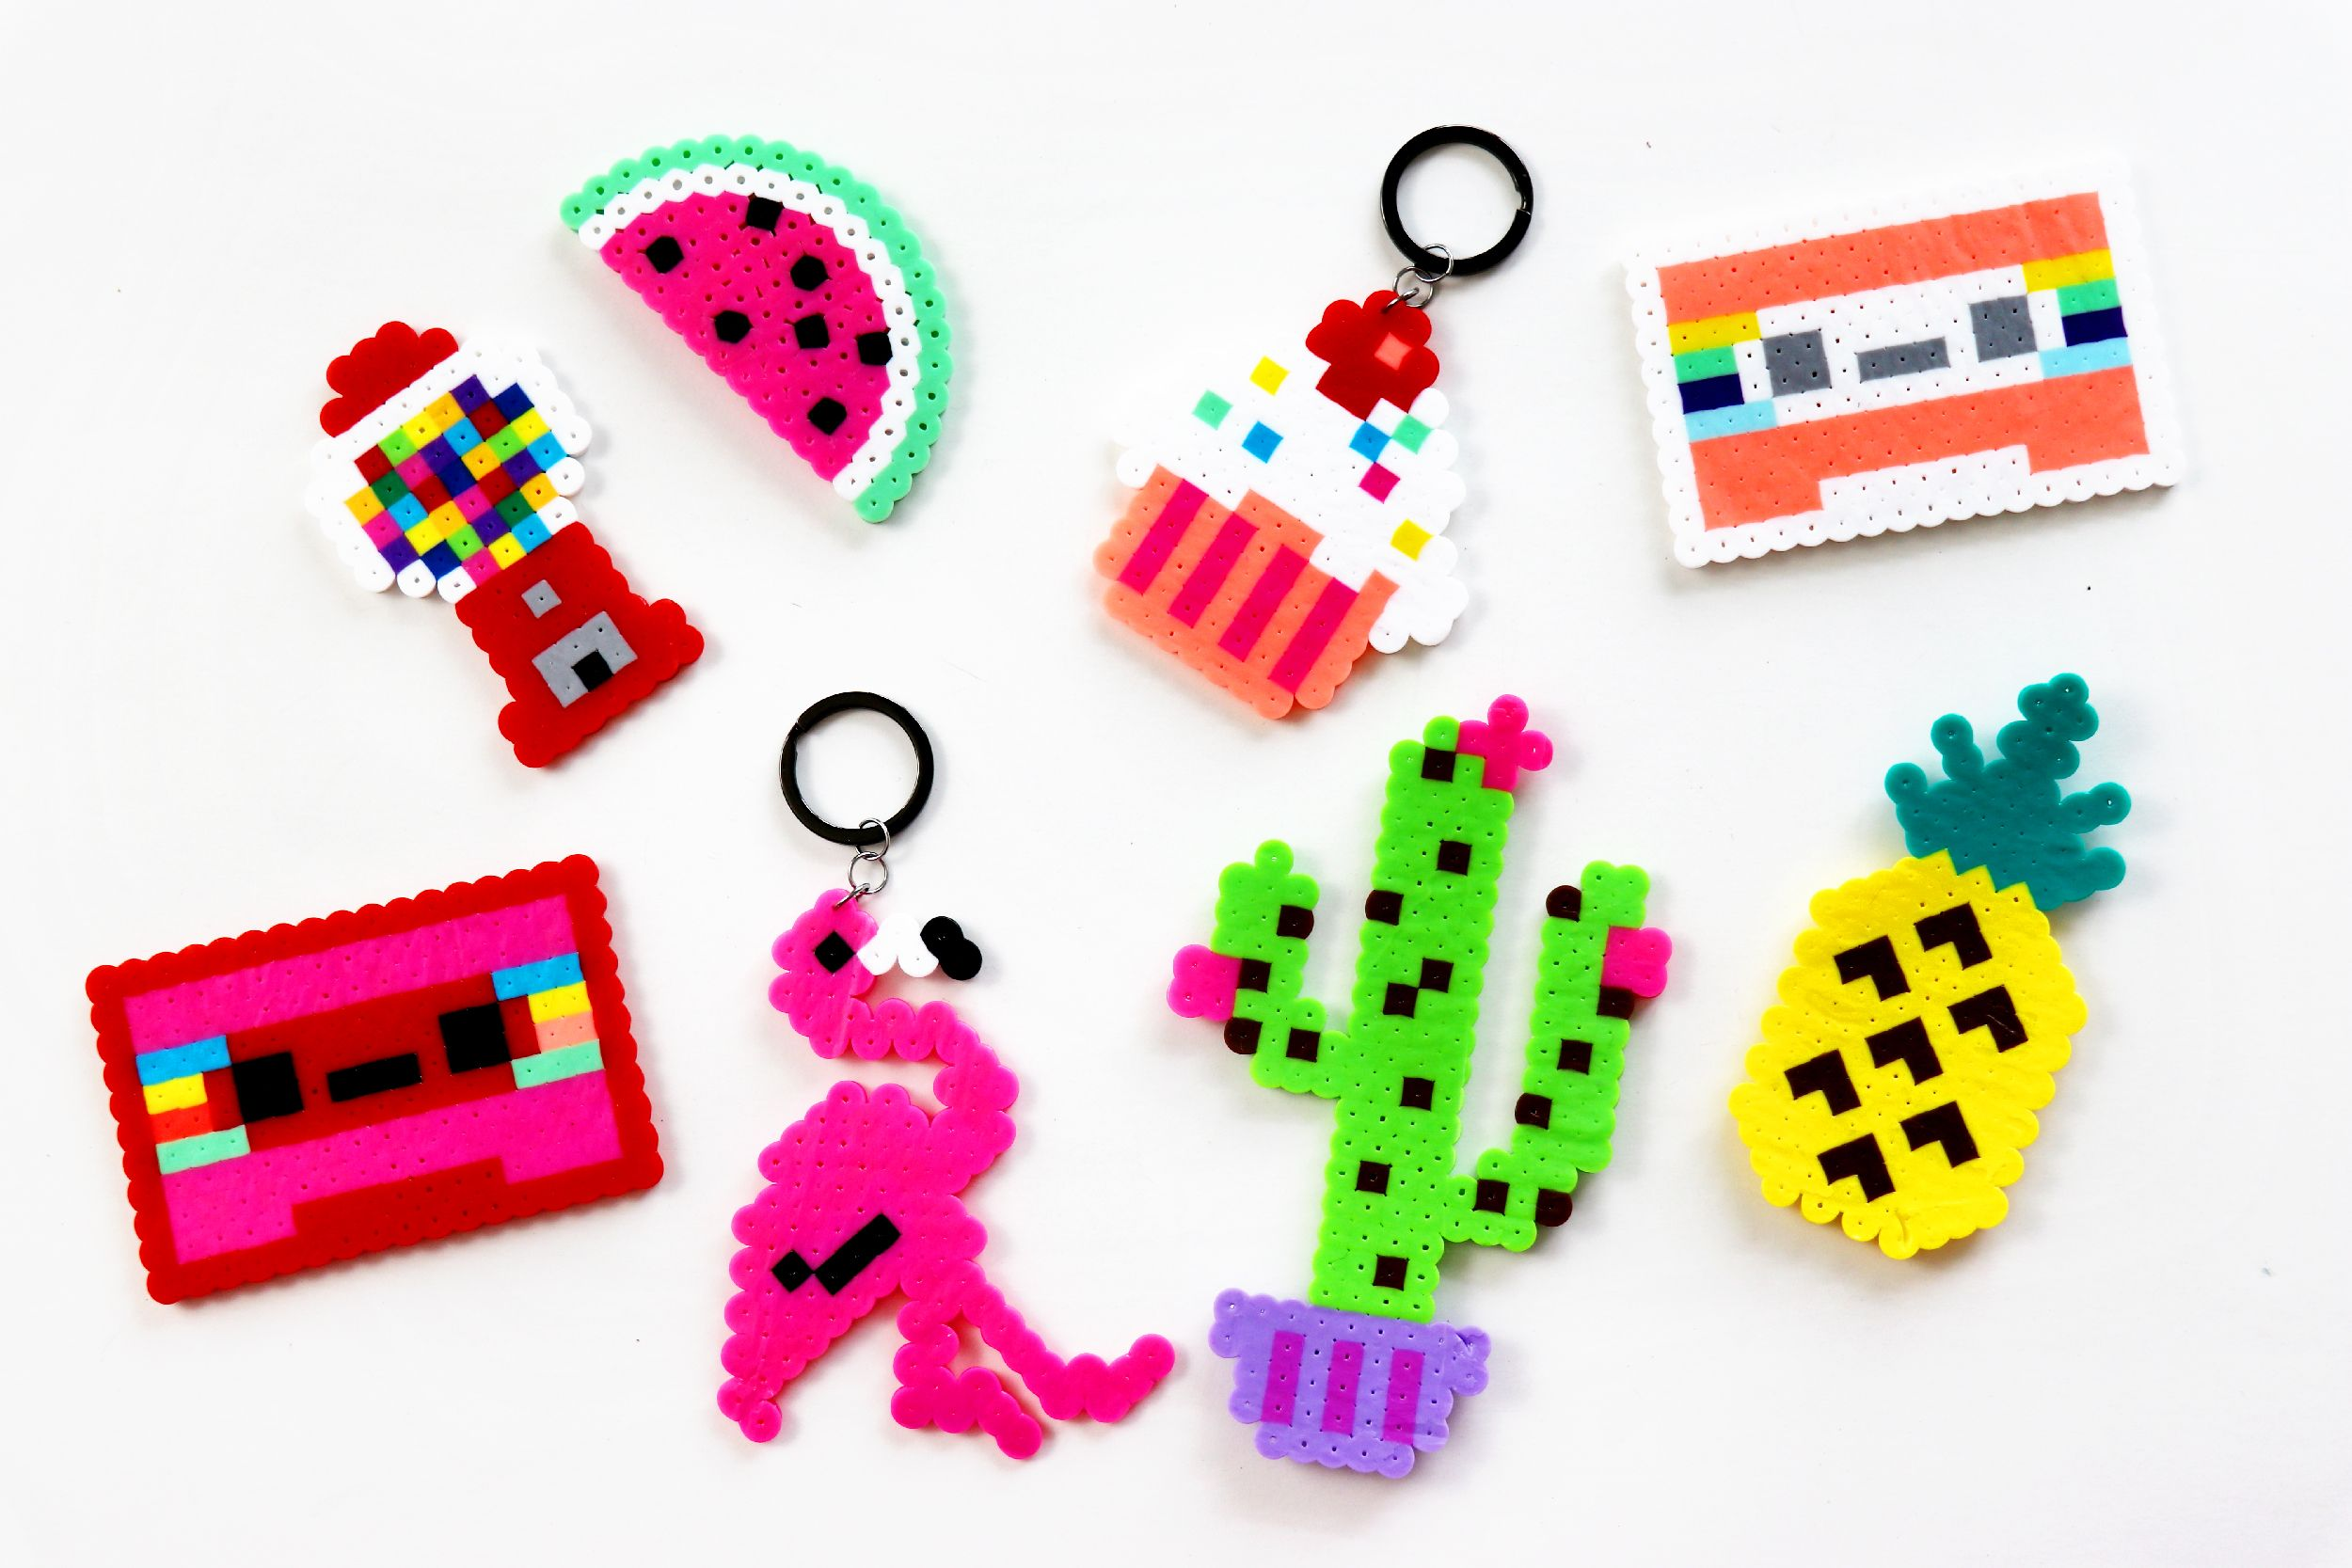 Easy DIY Ideas For When You're Bored This Summer - Perler Bead Key Chains! | Karen Kavett #summerfunideasforkids